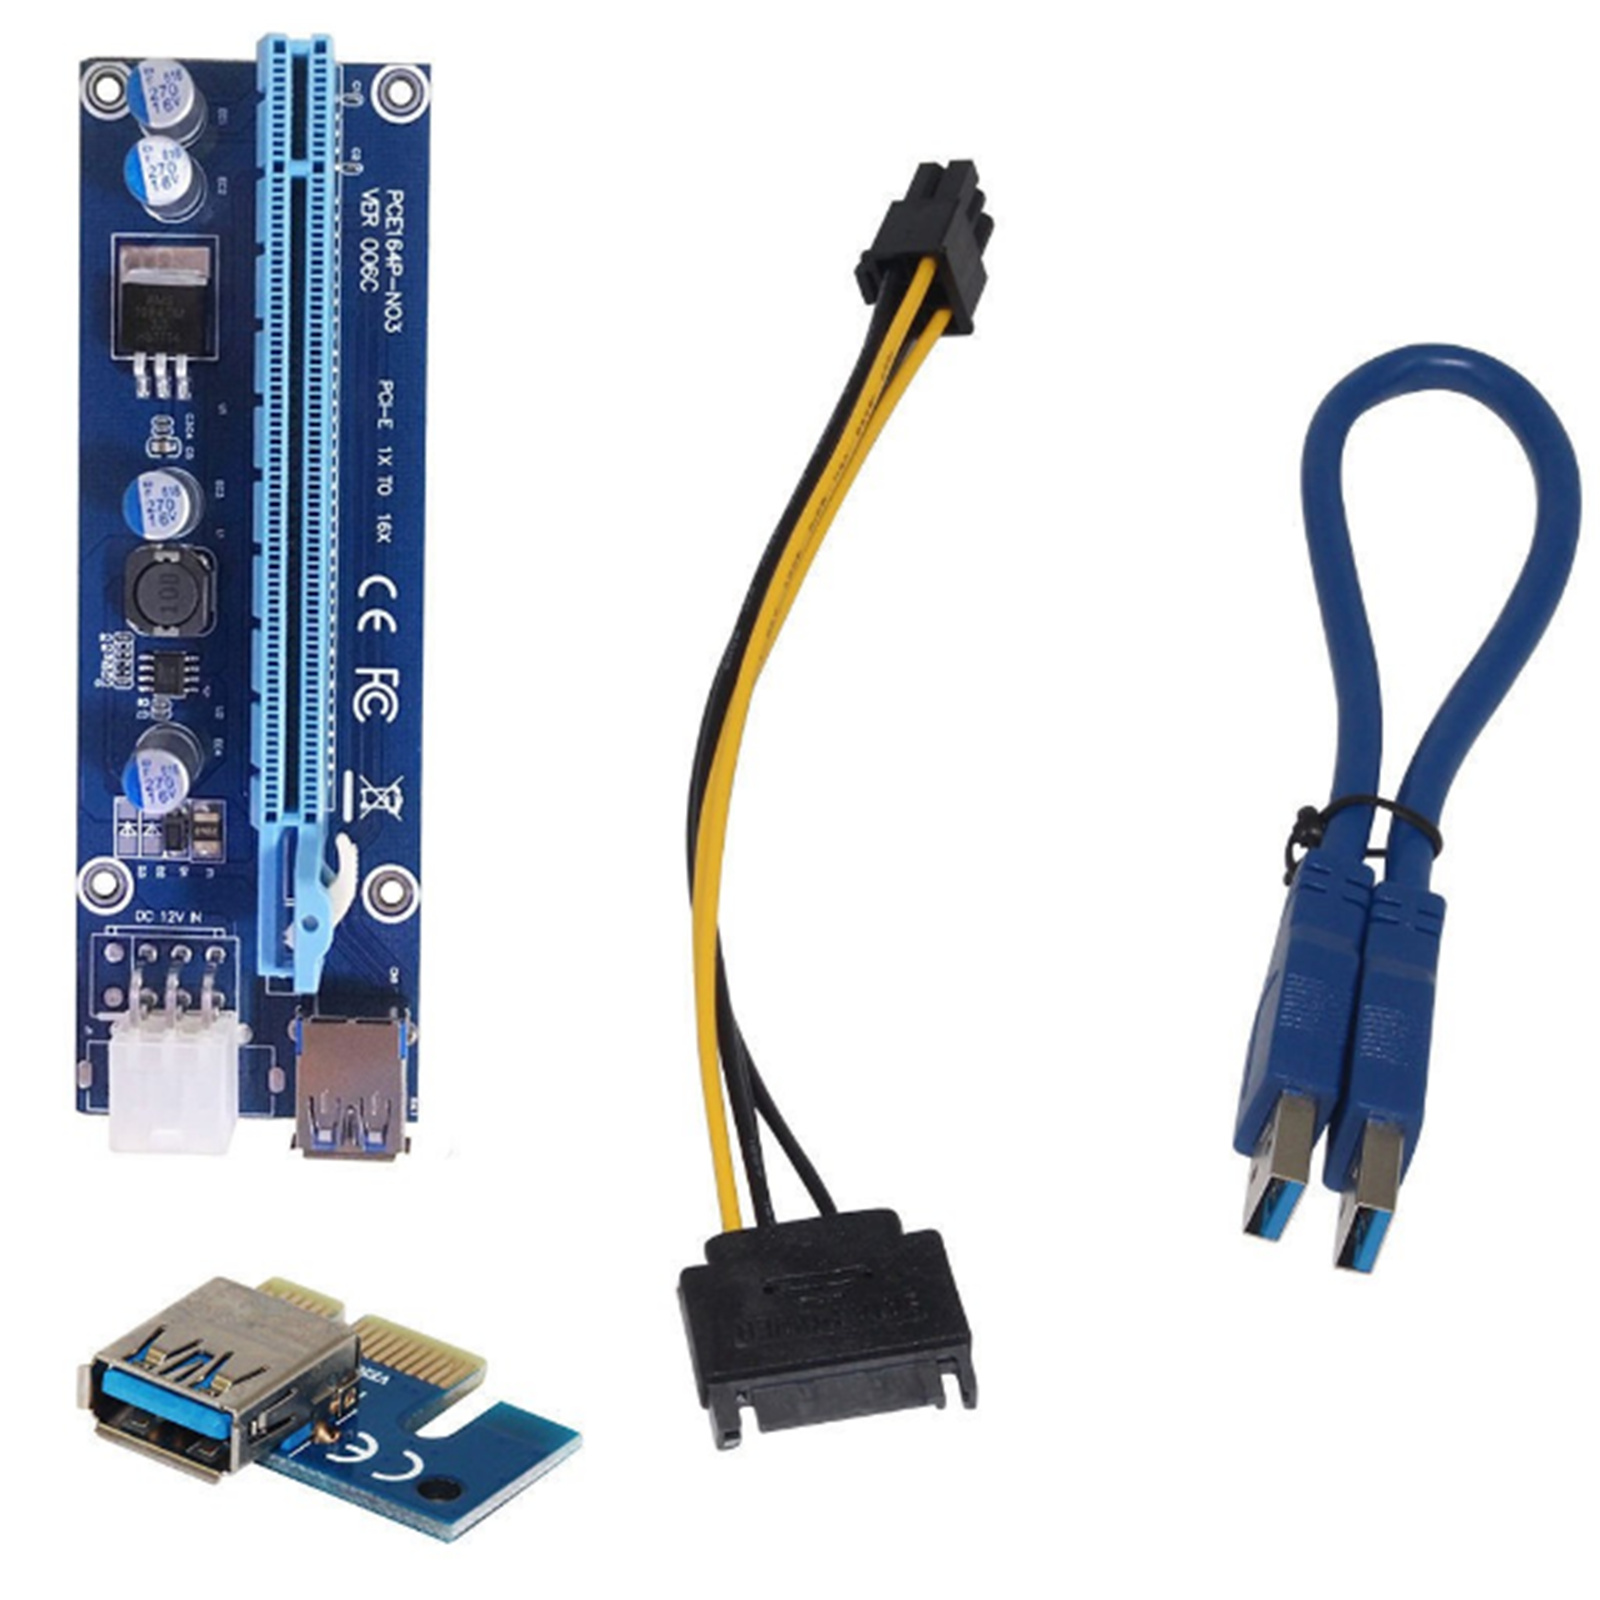 Buy The P Pce164p N03 Usb 30 Pci E Express 1x To16x Gpu Extender Orico 7 Port Card Riser Adapter Power Cable